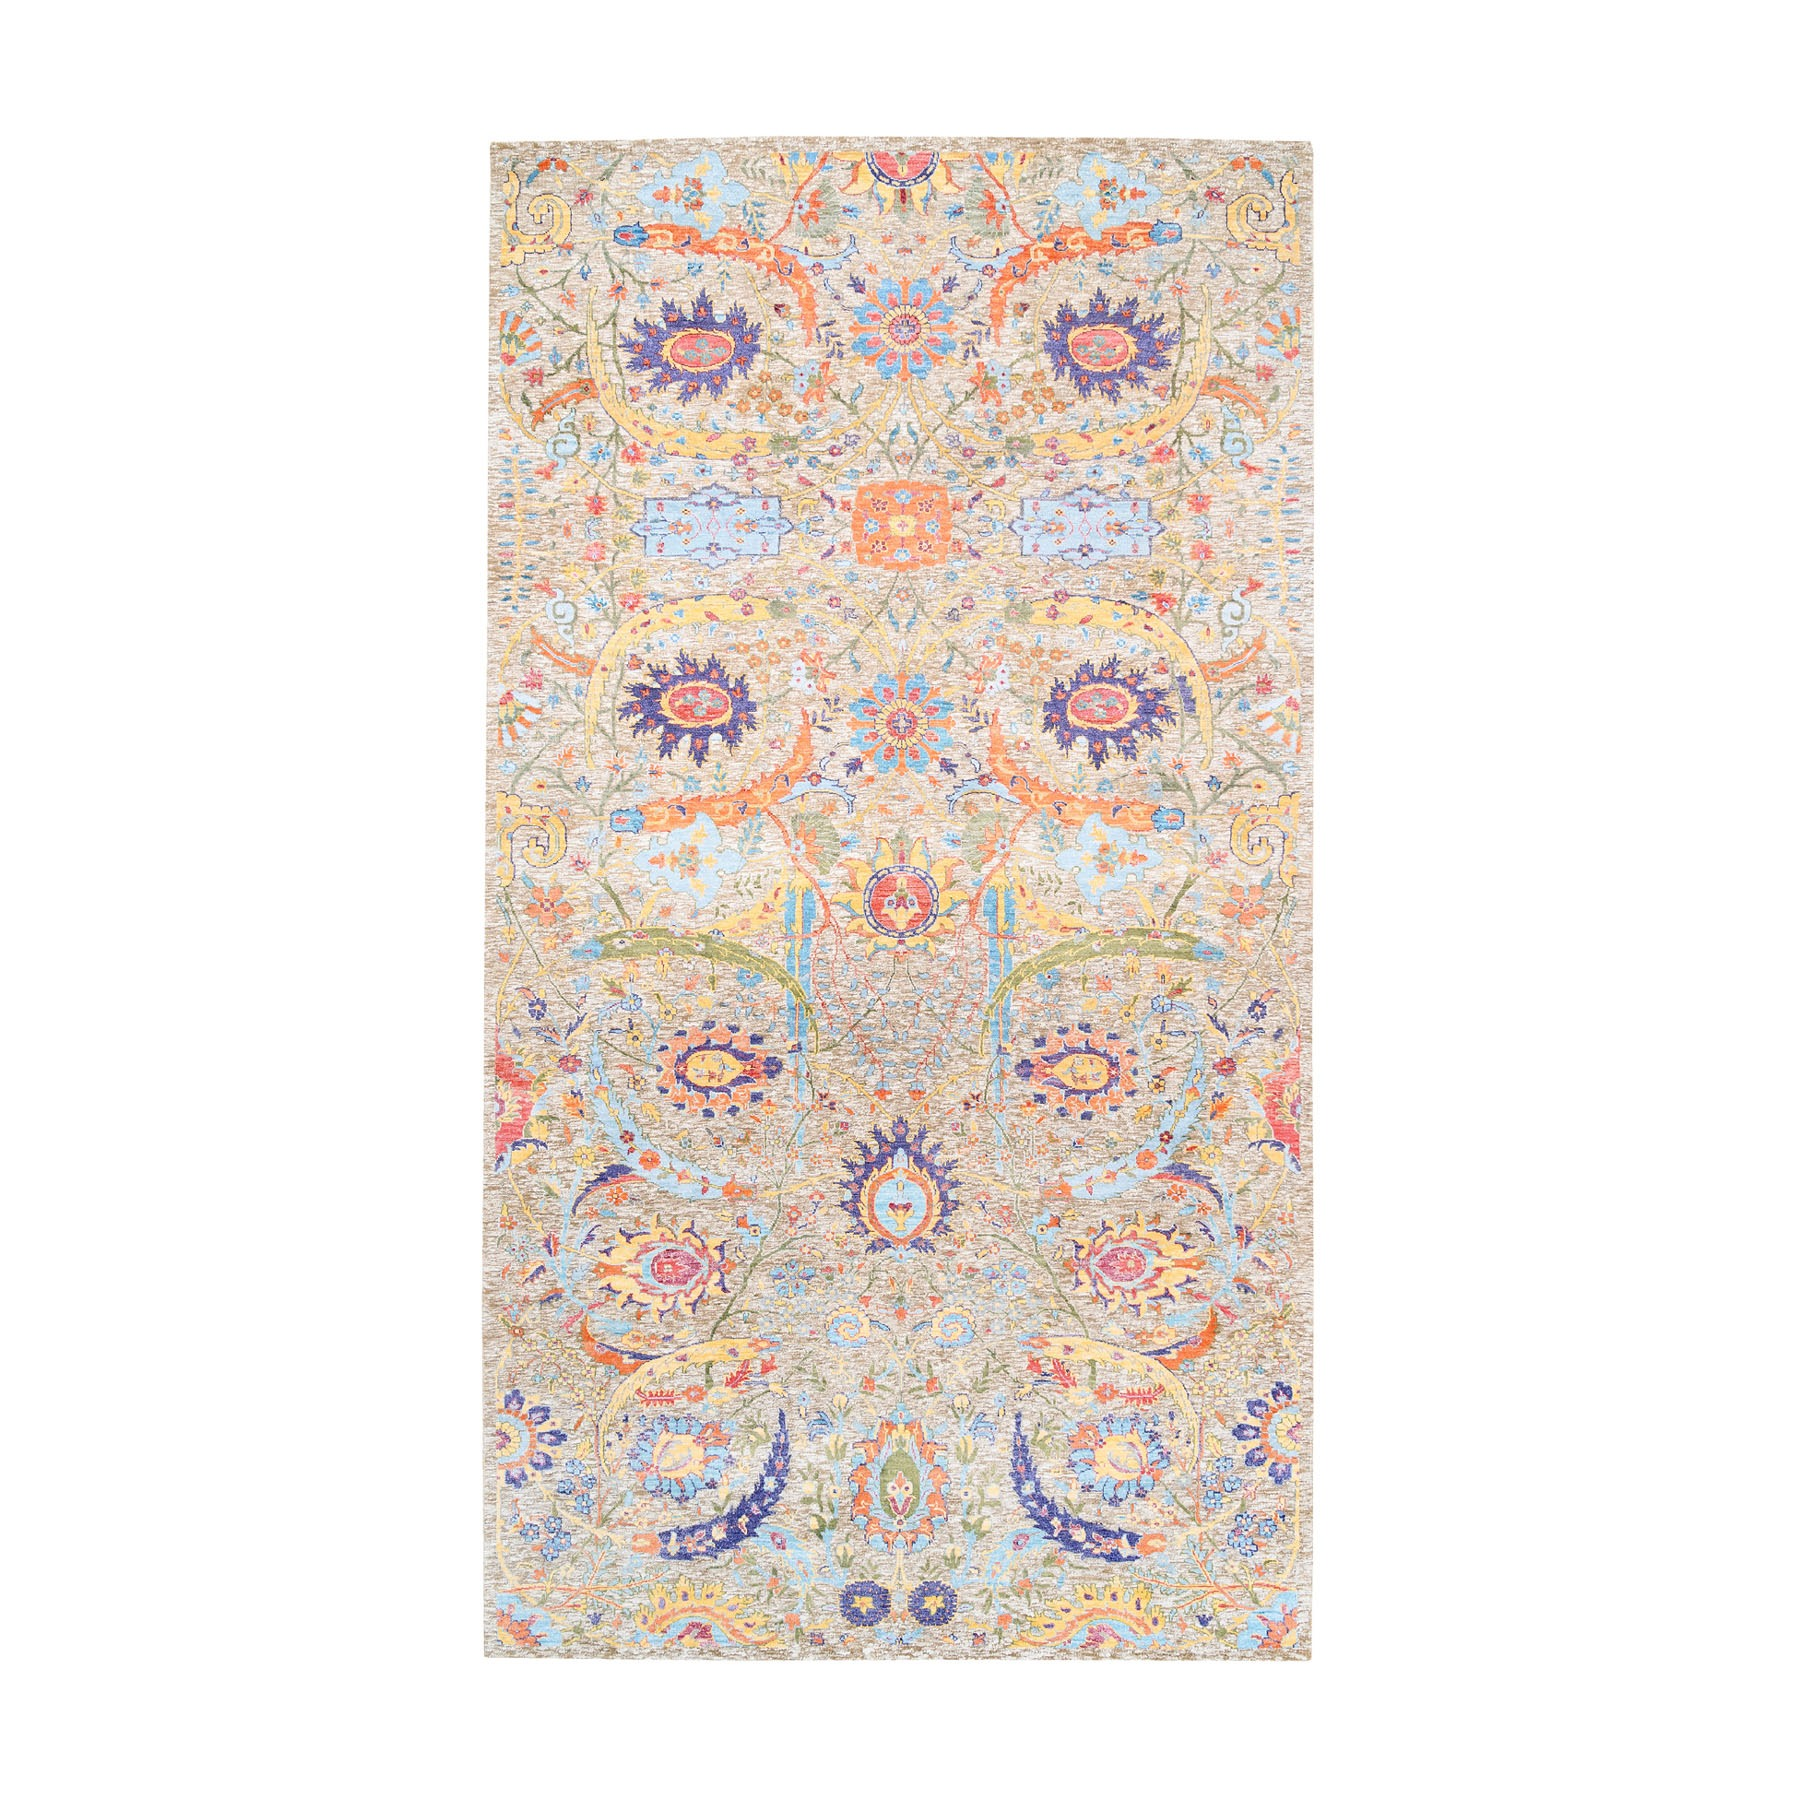 Transitional Rugs LUV560520